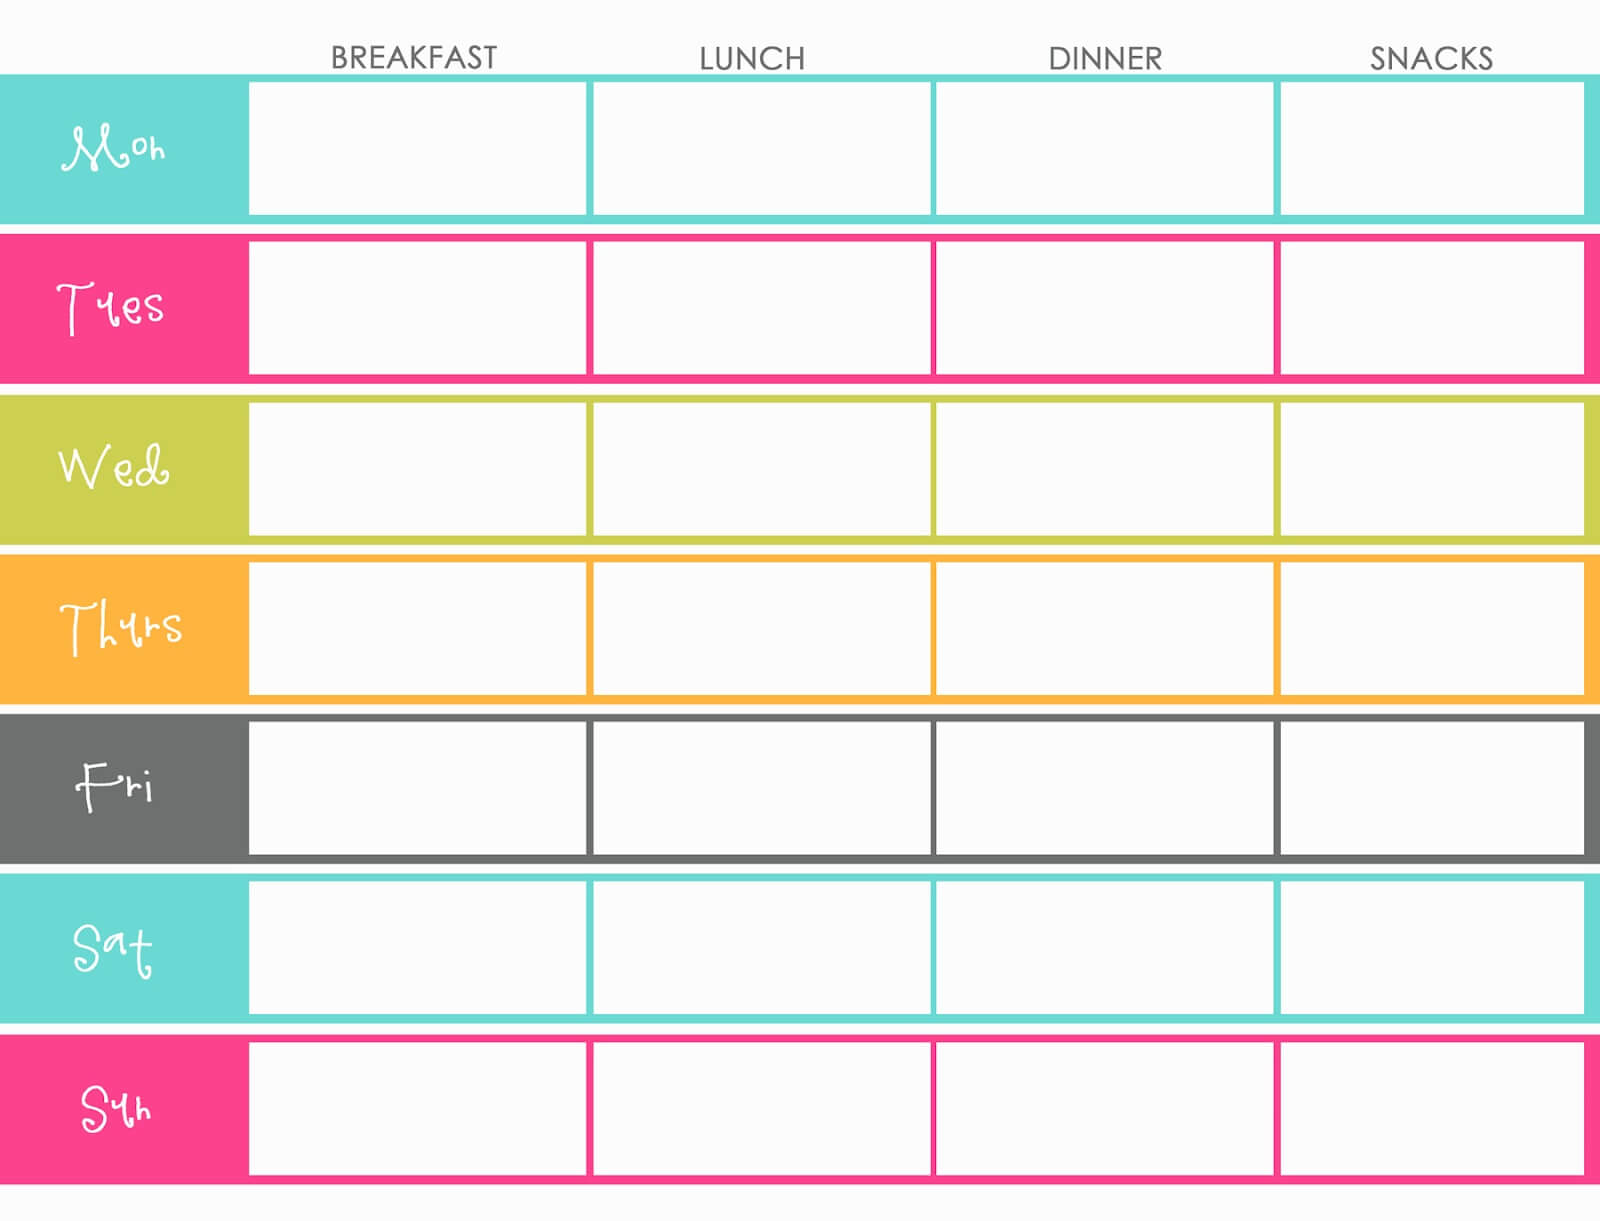 Weekly Meal Planner For Family Templates | Printable Weekly throughout Weekly Meal Planner Template Word